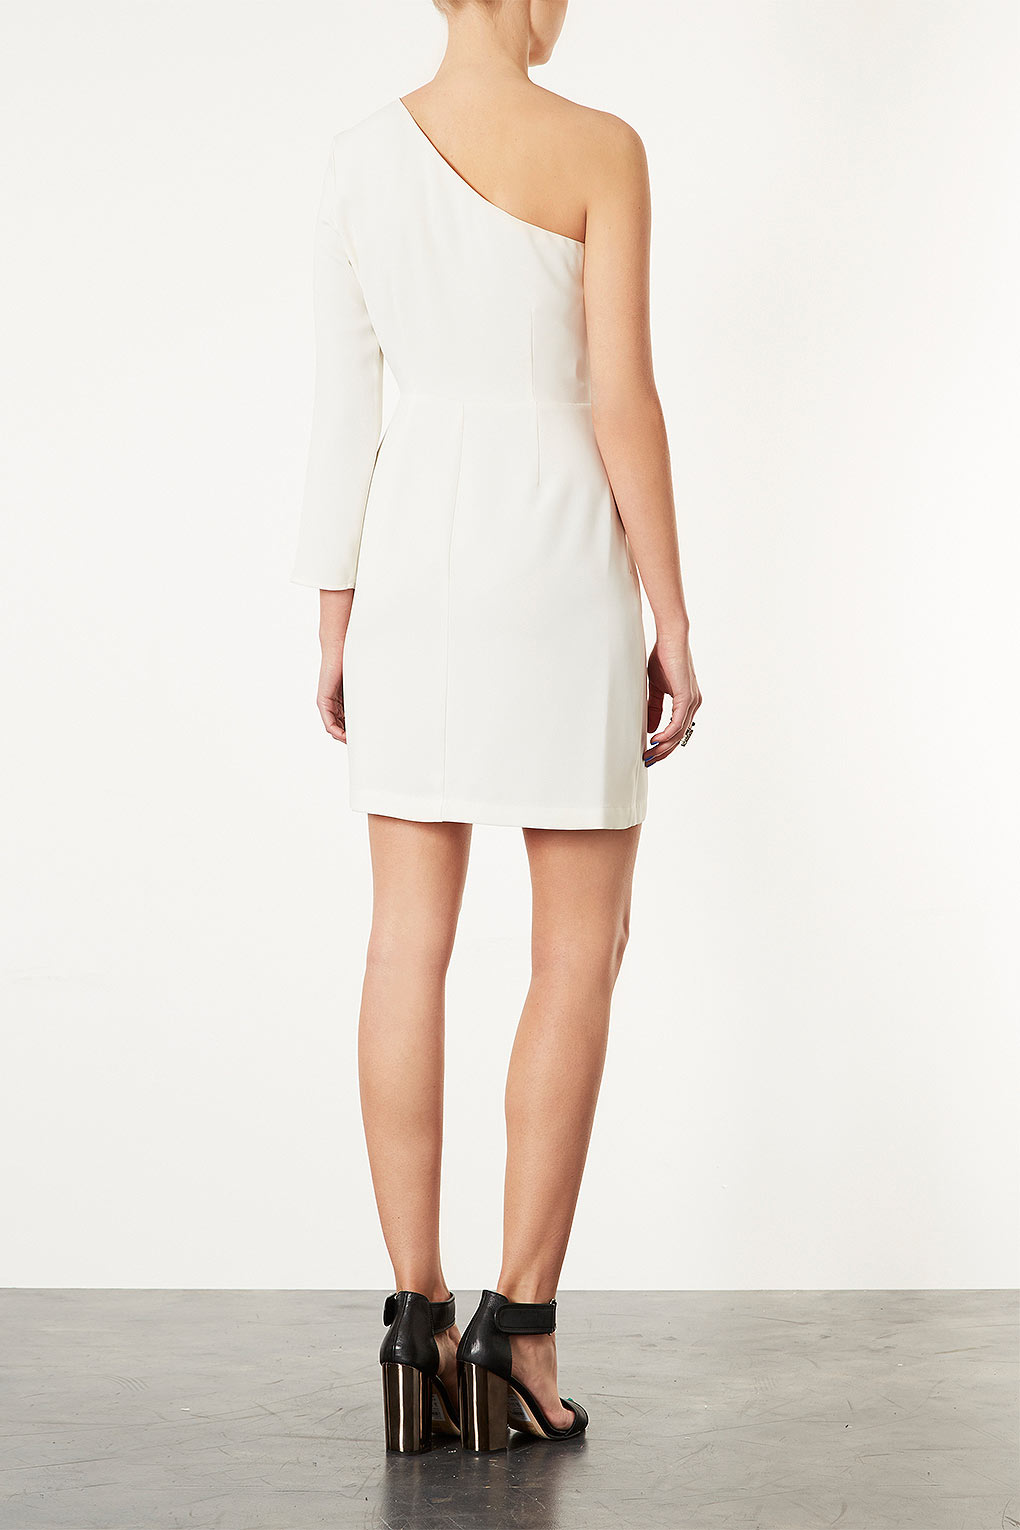 6d56893dfa7c TOPSHOP One Shoulder Shift Dress in White - Lyst